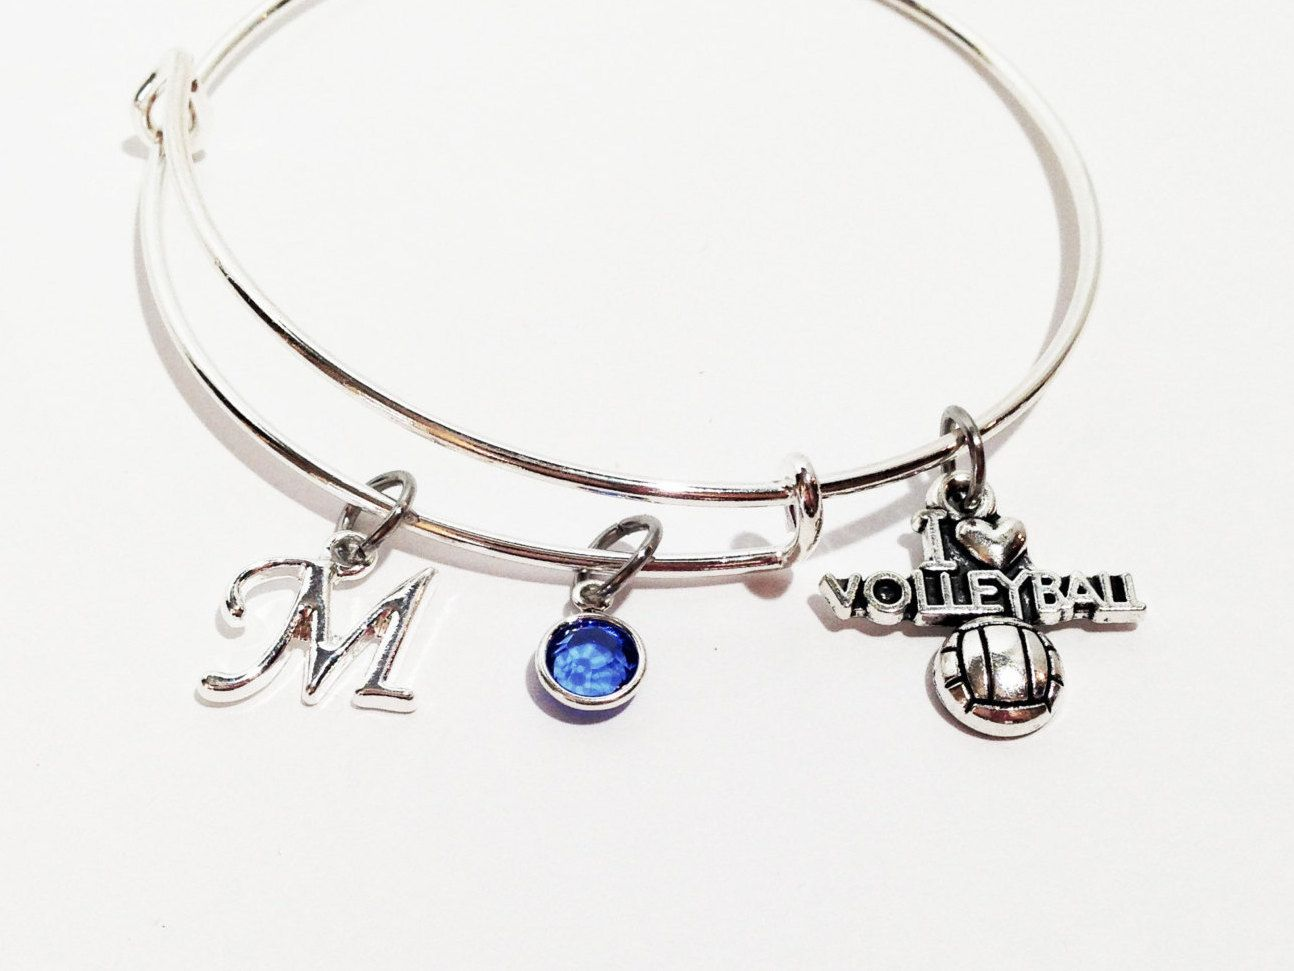 Volleyball Bracelet Volleyball Gifts Volleyball Coach Gifts Volleyball Team Gifts Volley Ball Volleyball Volleyball Gifts Coach Gifts Team Gifts